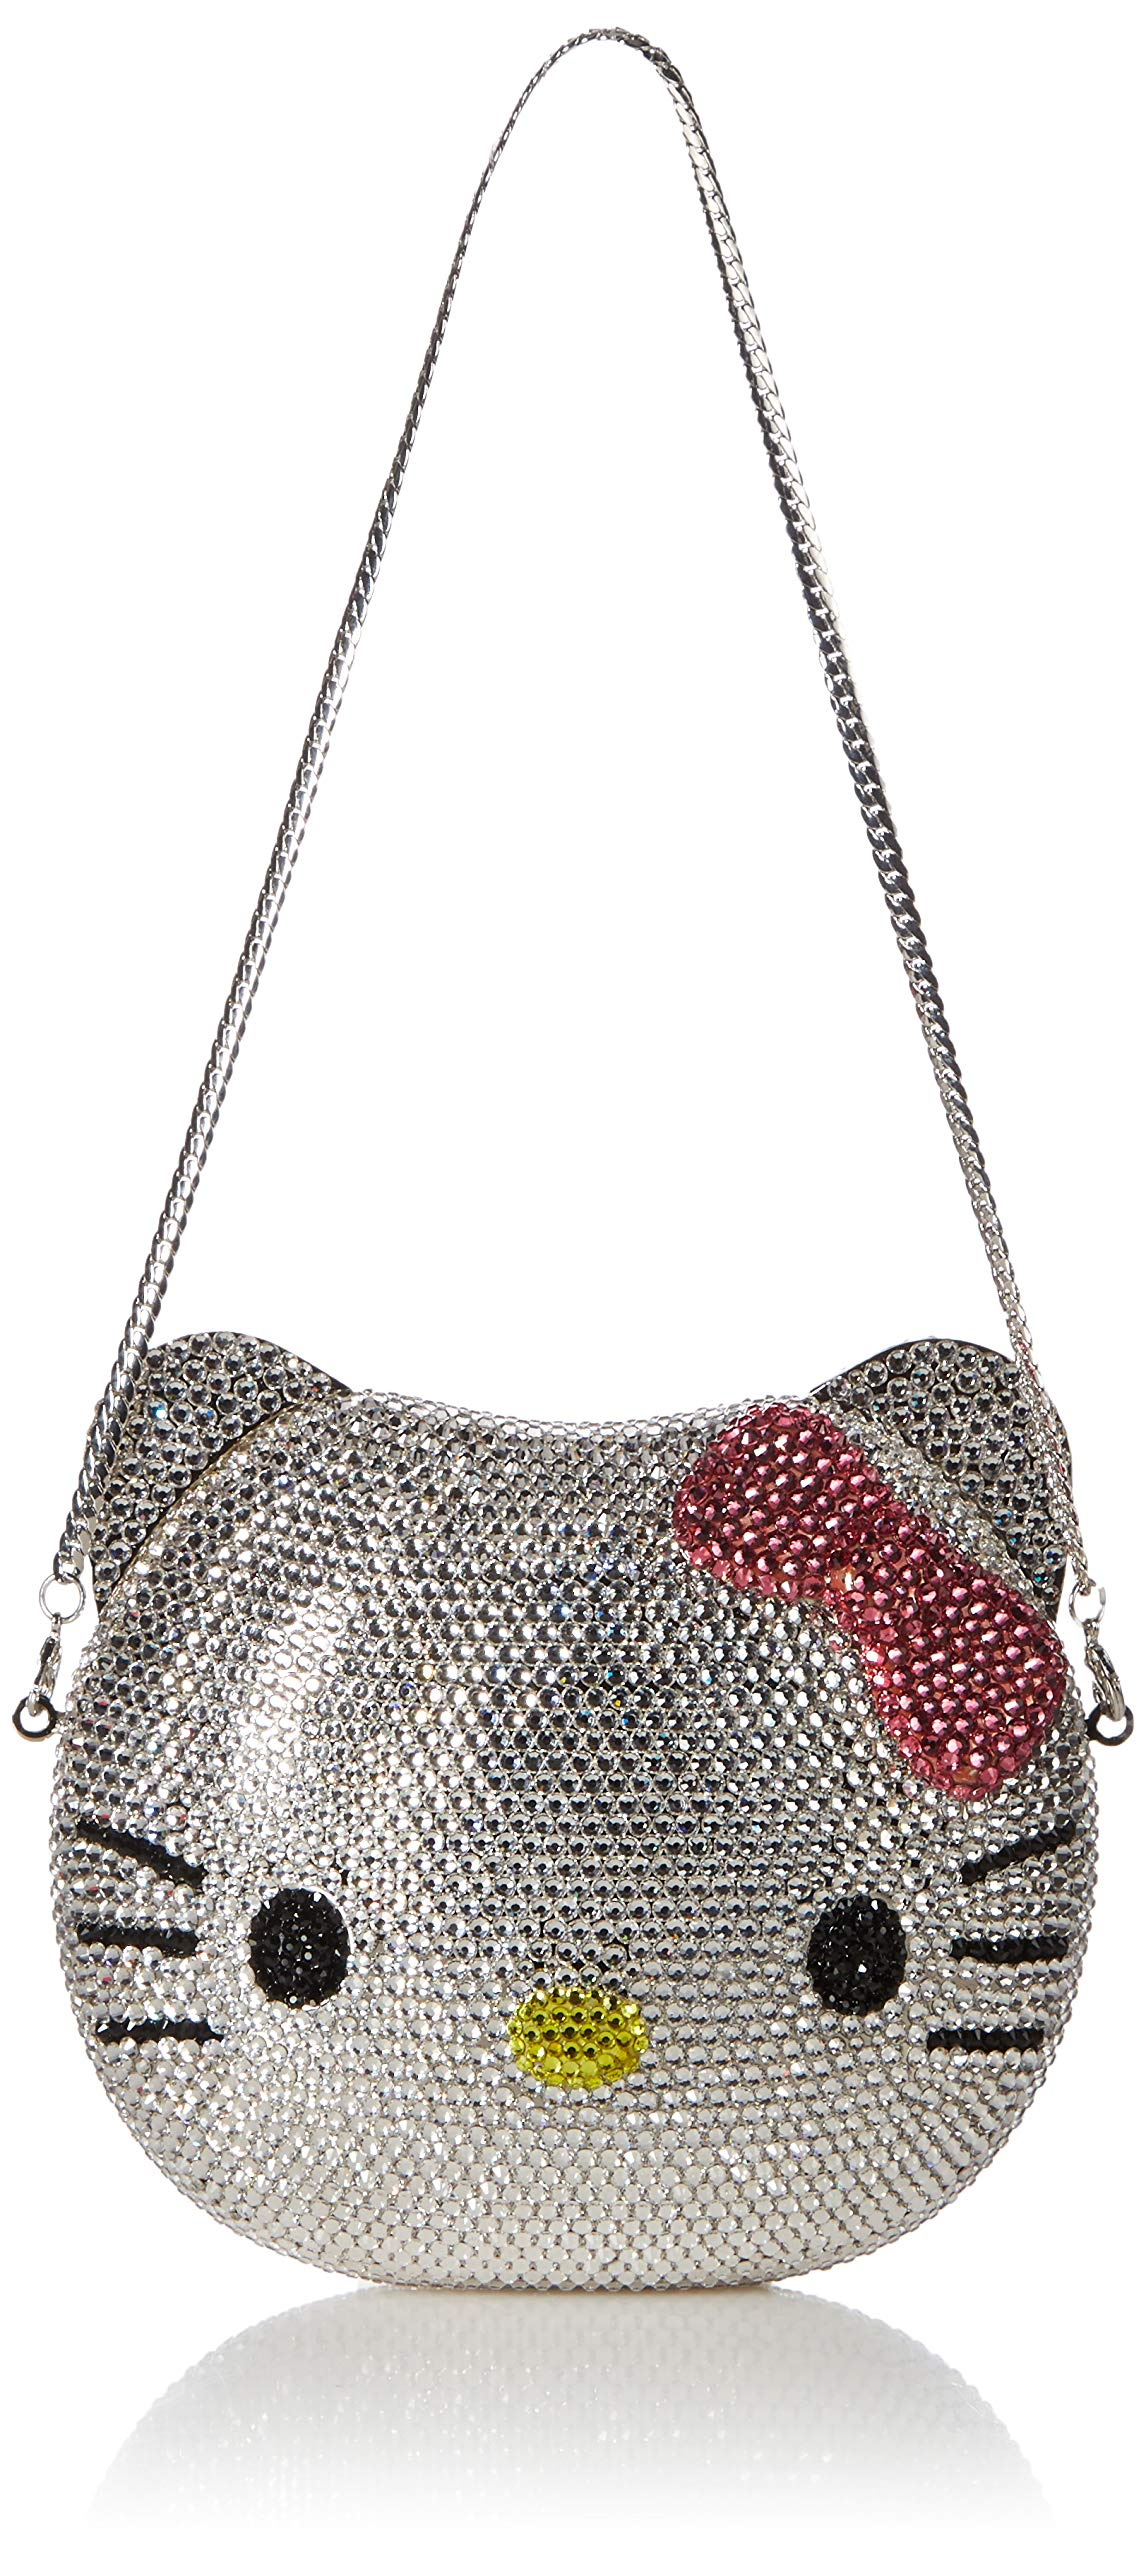 3-D Hello Kitty Cat Crystal Couture Clutch Special Occasion Holiday Party Evening Bag Silver